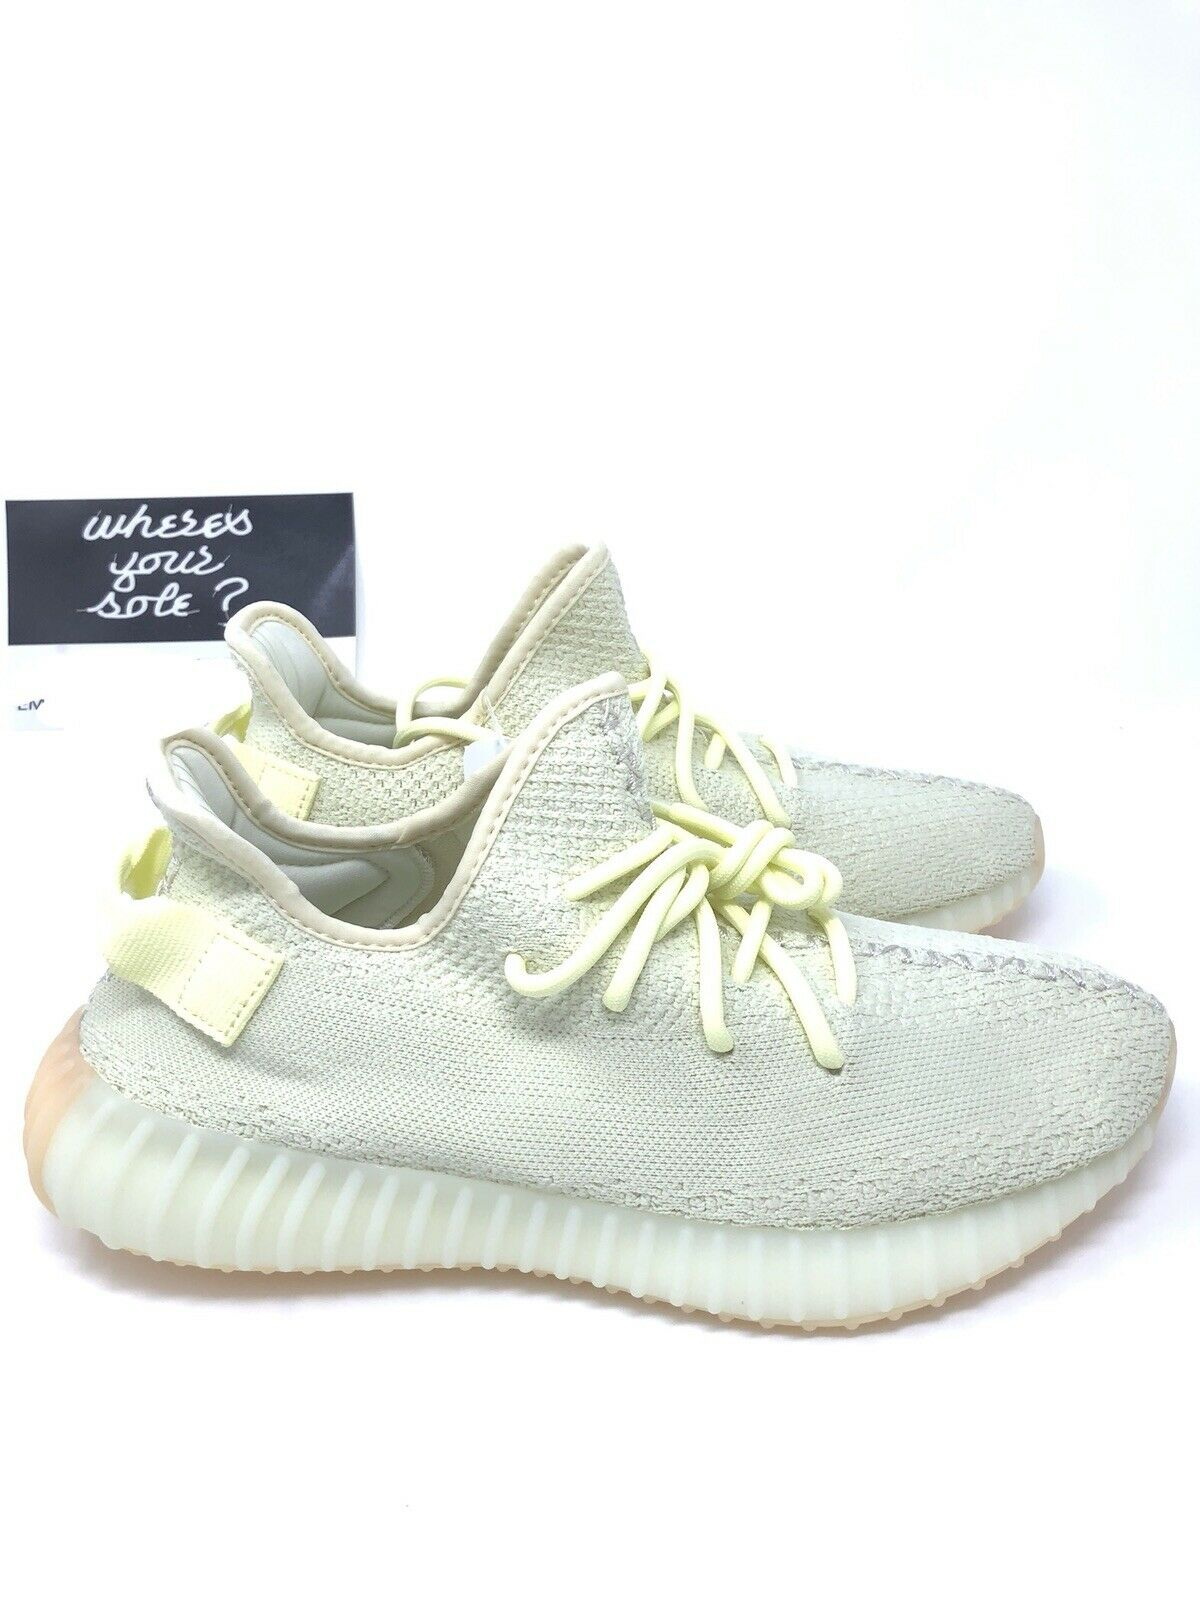 Adidas Yeezy 350 Boost V2 Butter size 9 NEW DS Kanye West F36980